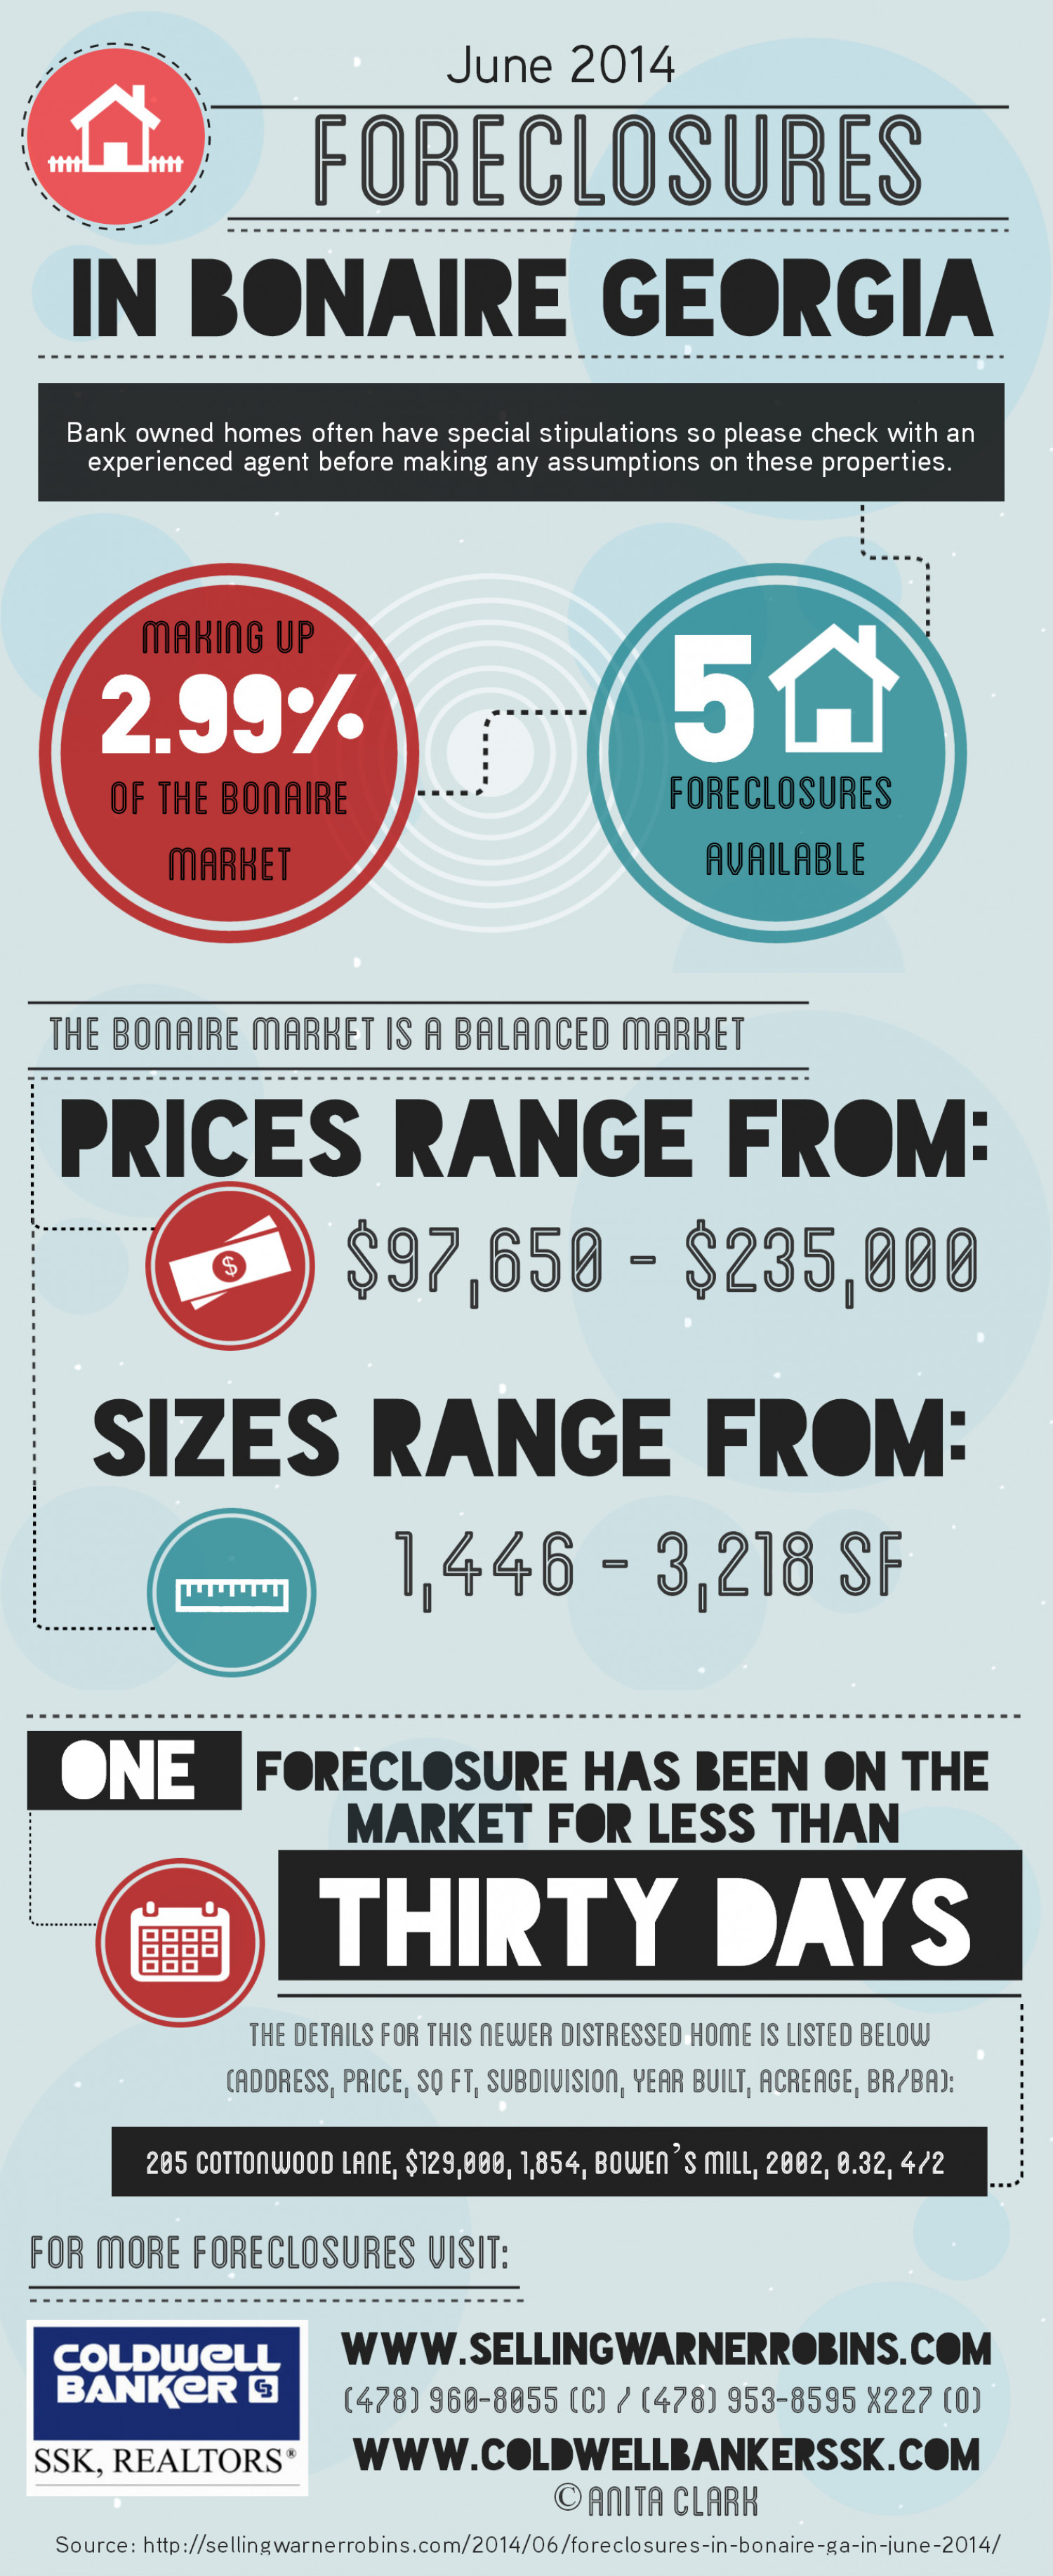 Foreclosures in Bonaire GA for June 2014 Infographic